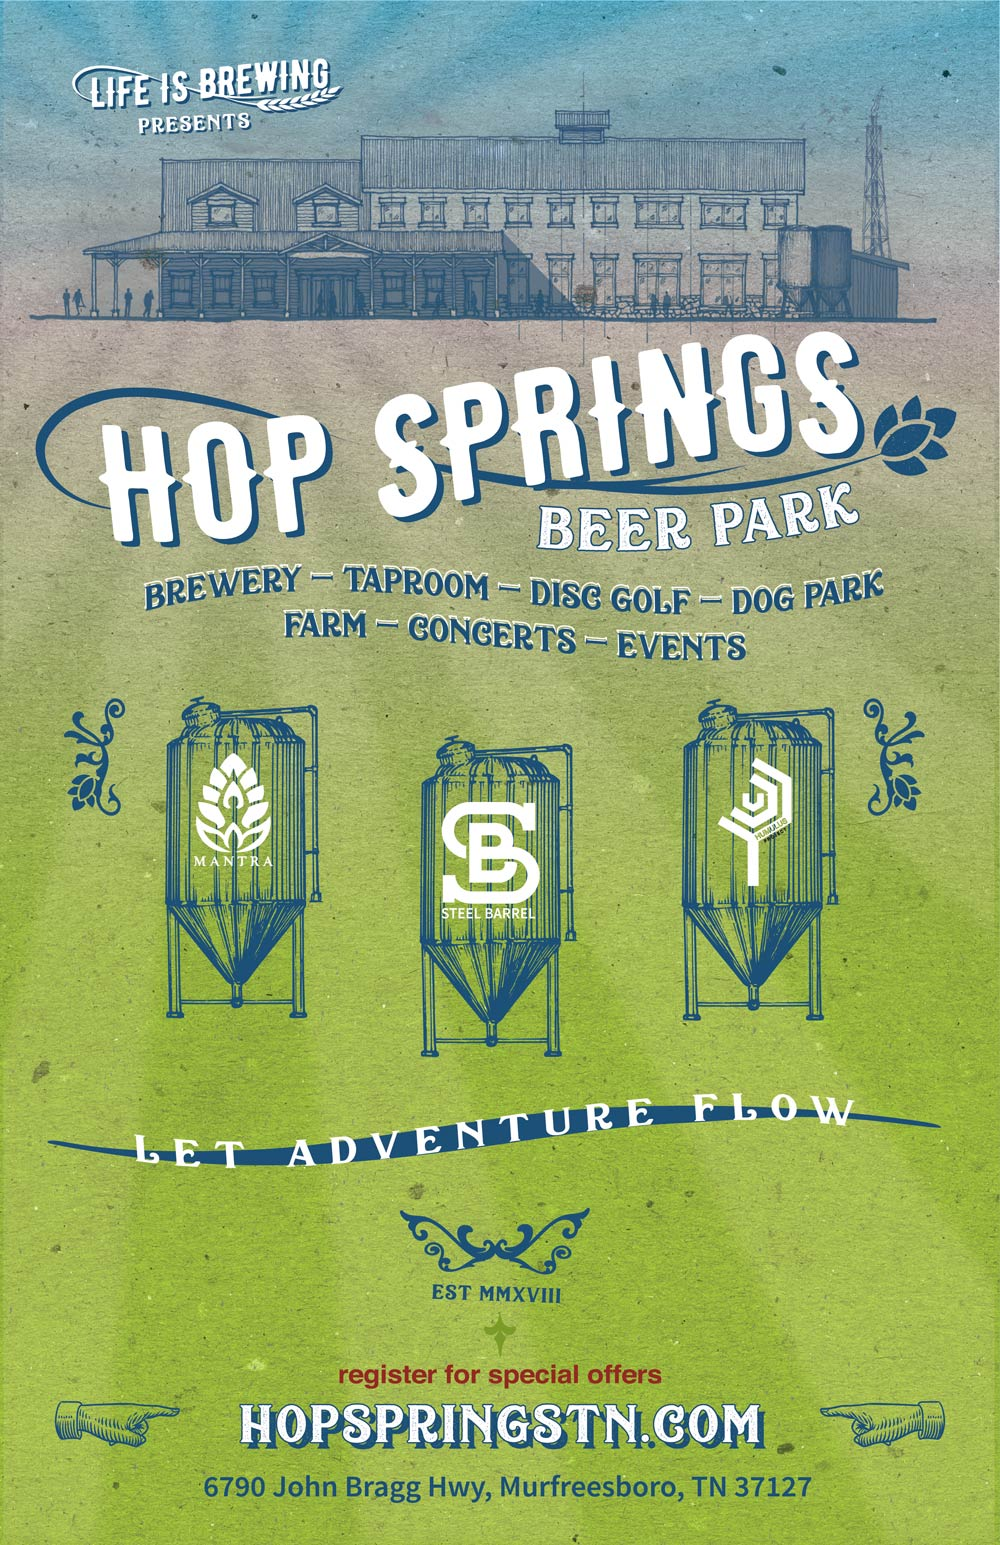 Hop Springs Beer Park - Let Adventure Flow